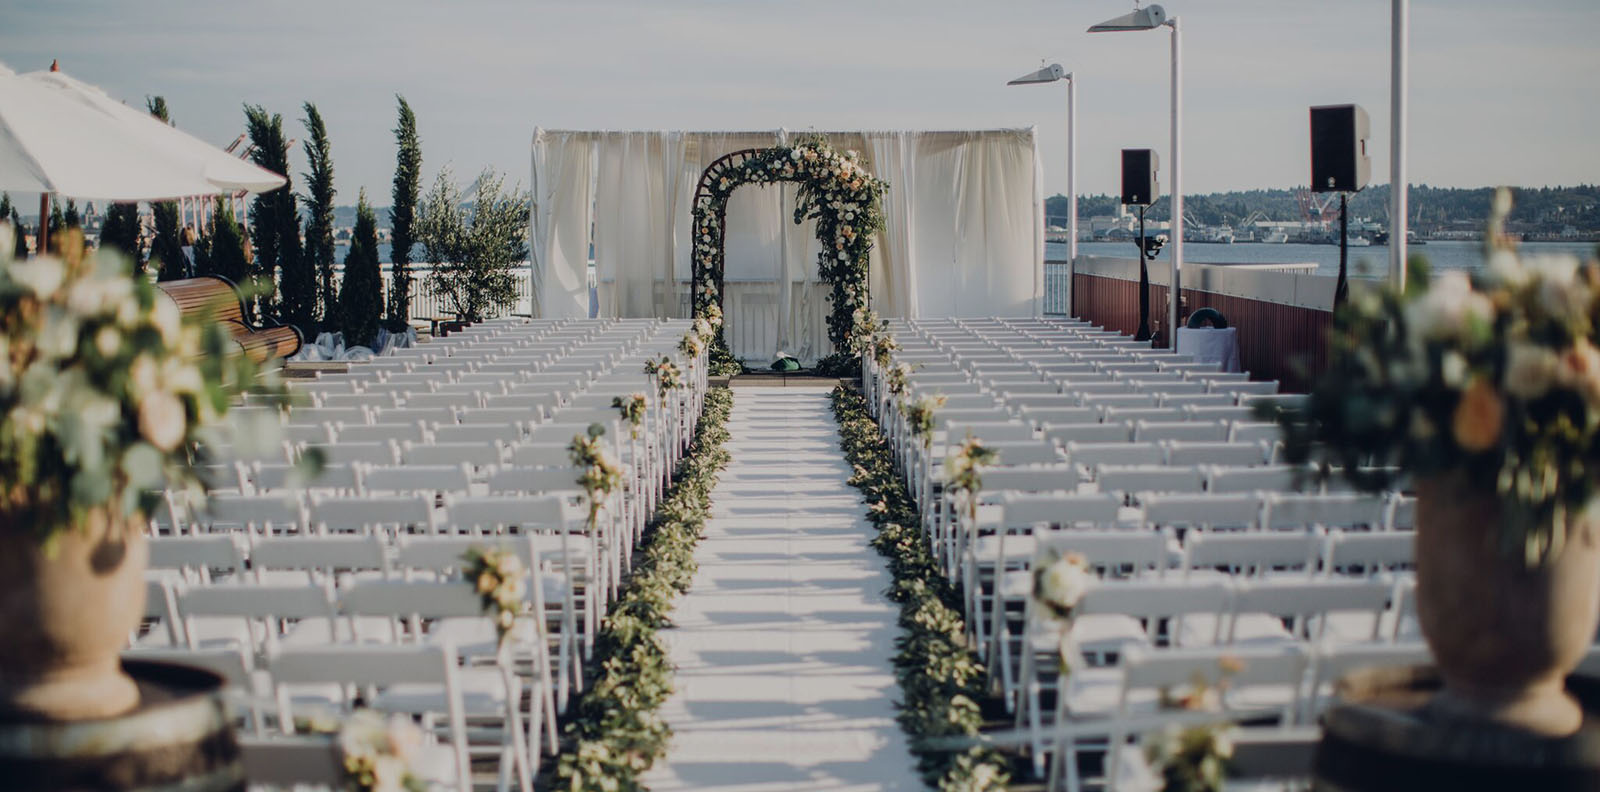 wedding ceremondy chairs and aisle